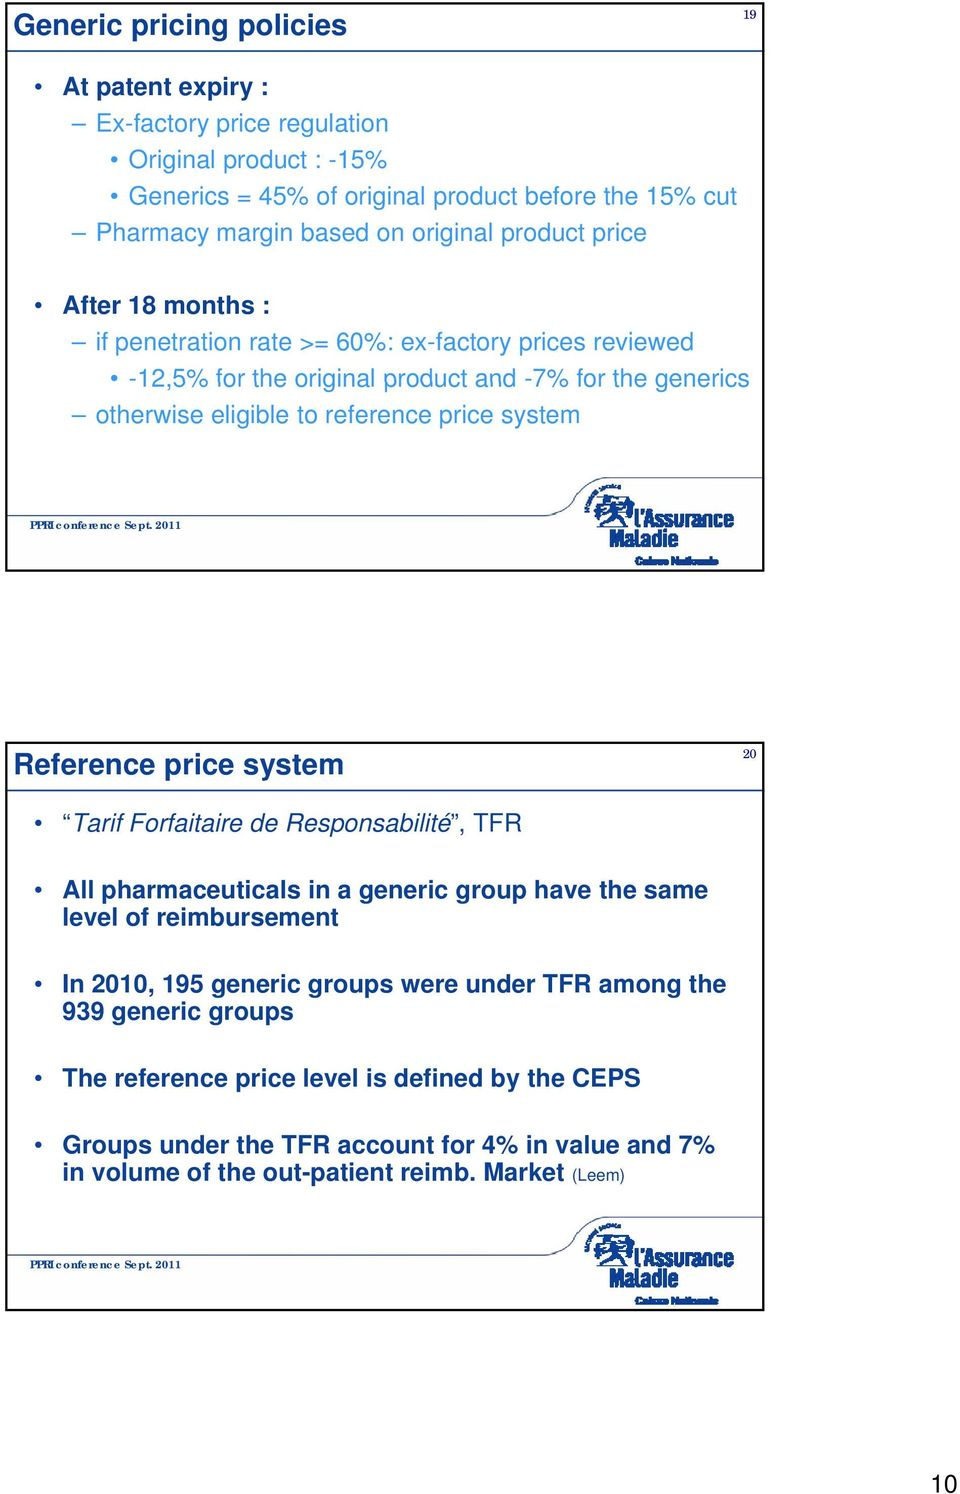 price system Reference price system 20 Tarif Forfaitaire de Responsabilité, TFR All pharmaceuticals in a generic group have the same level of reimbursement In 2010, 195 generic groups